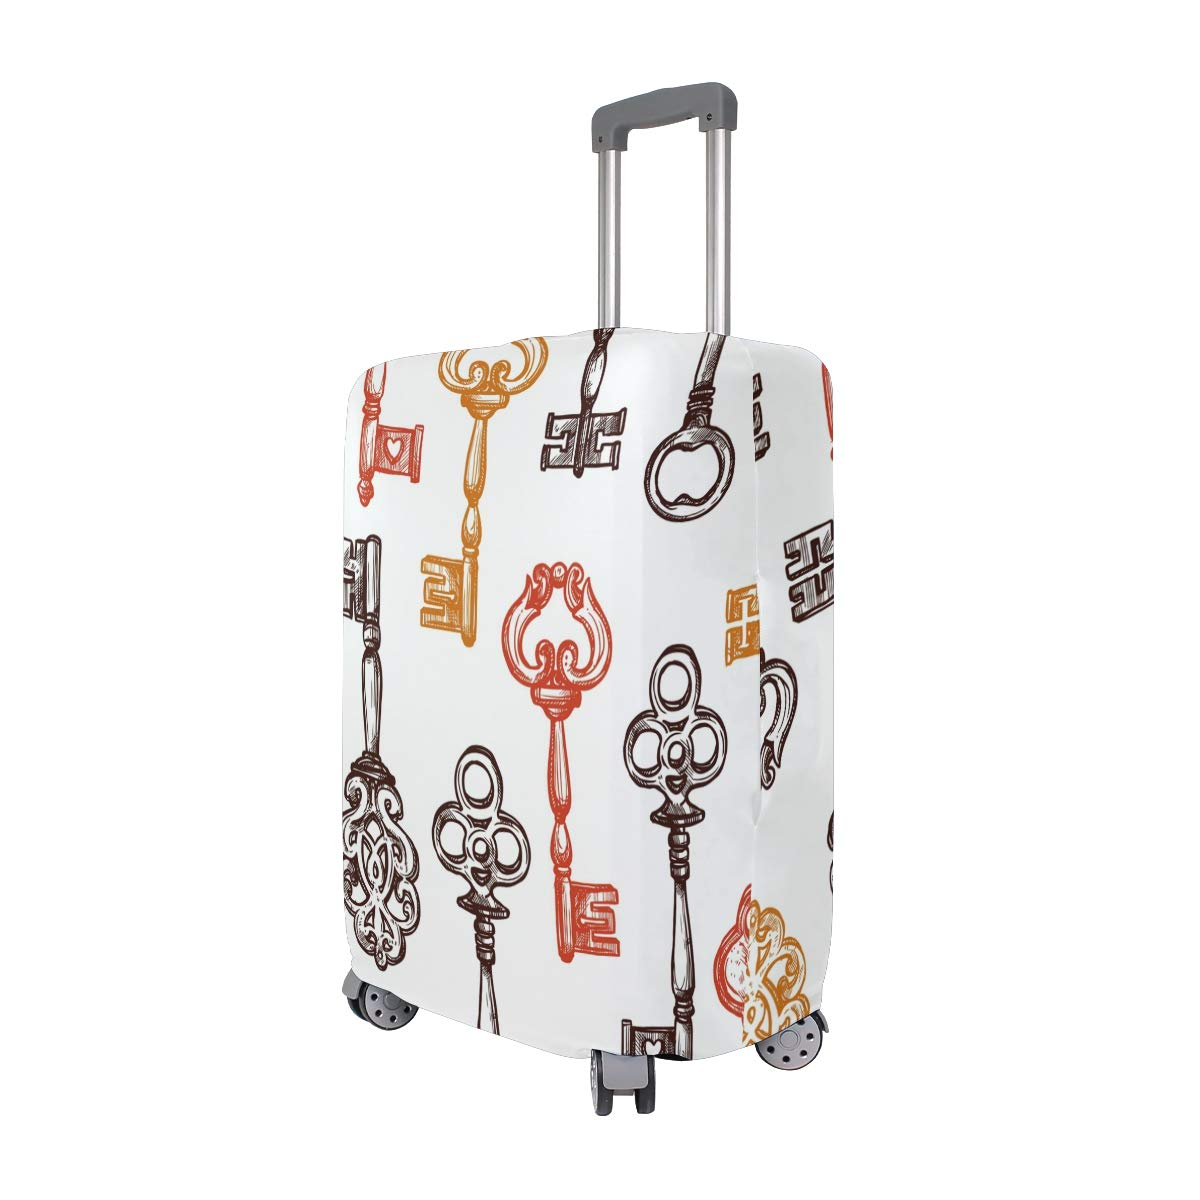 Baggage Covers Vintage Retro Key Drawn Pattern Washable Protective Case